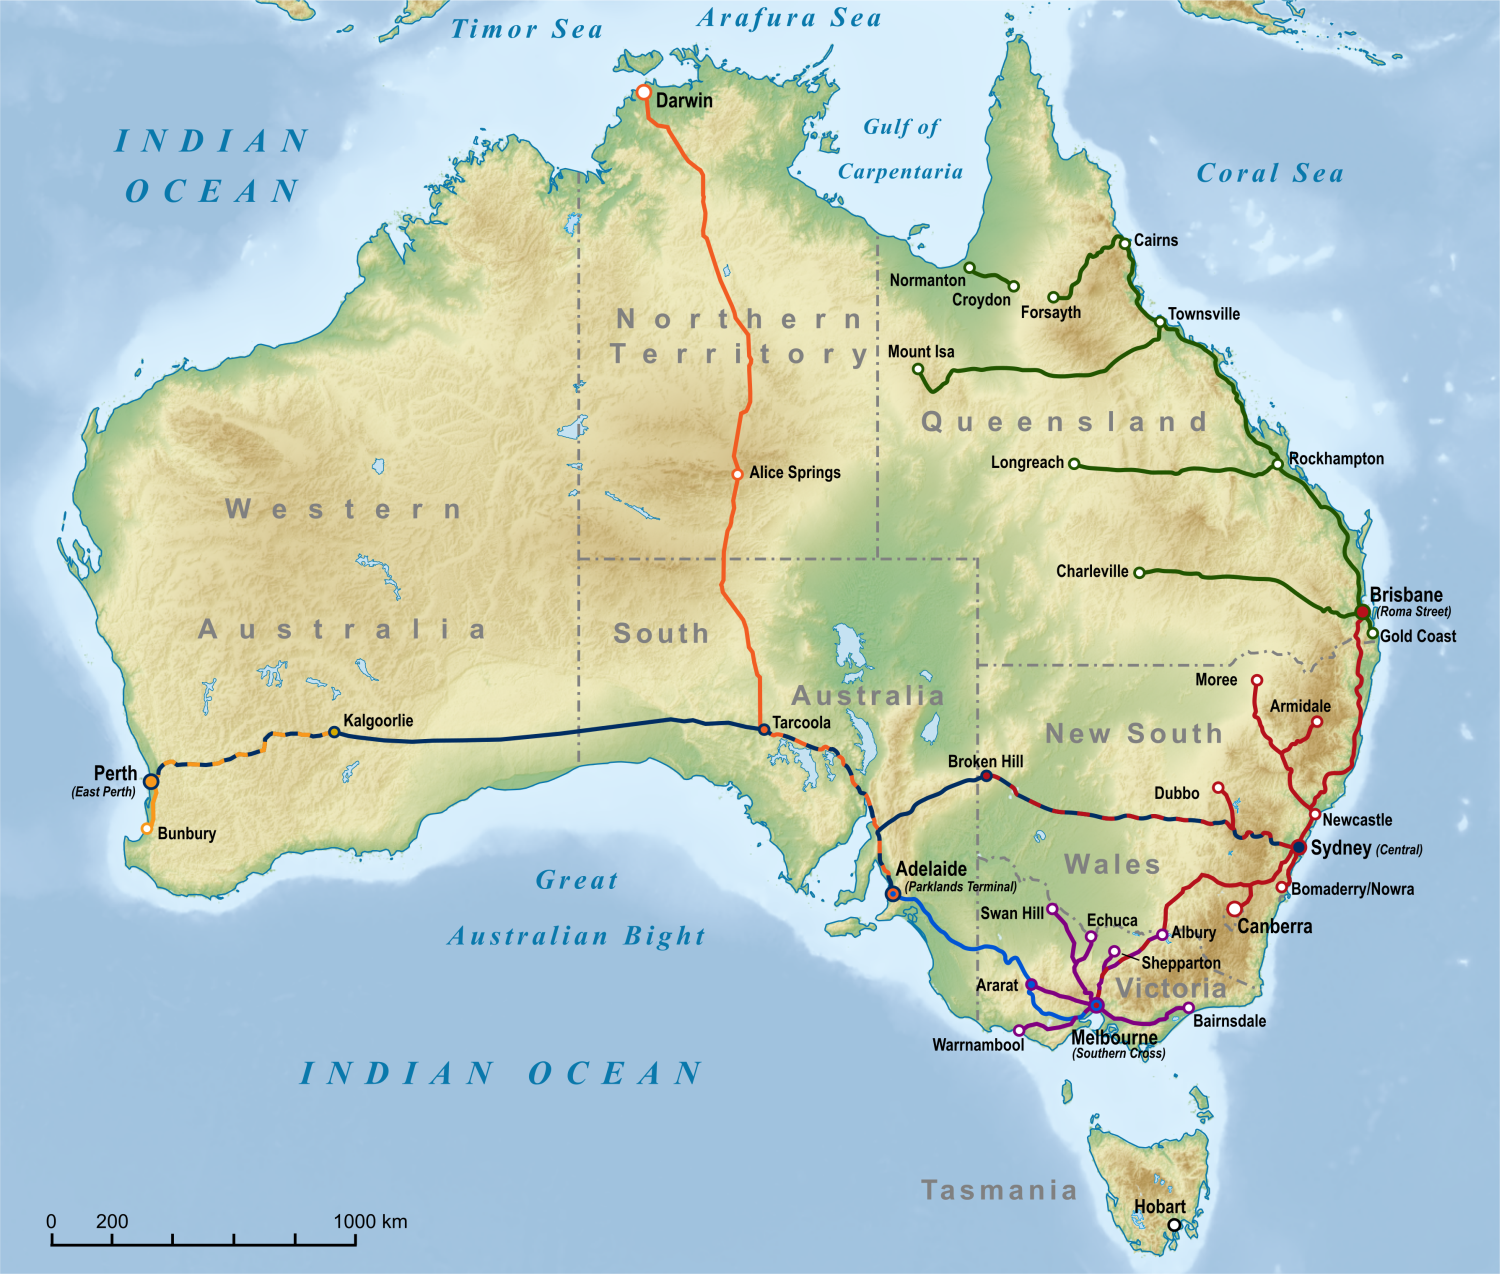 Copy editing services australia map